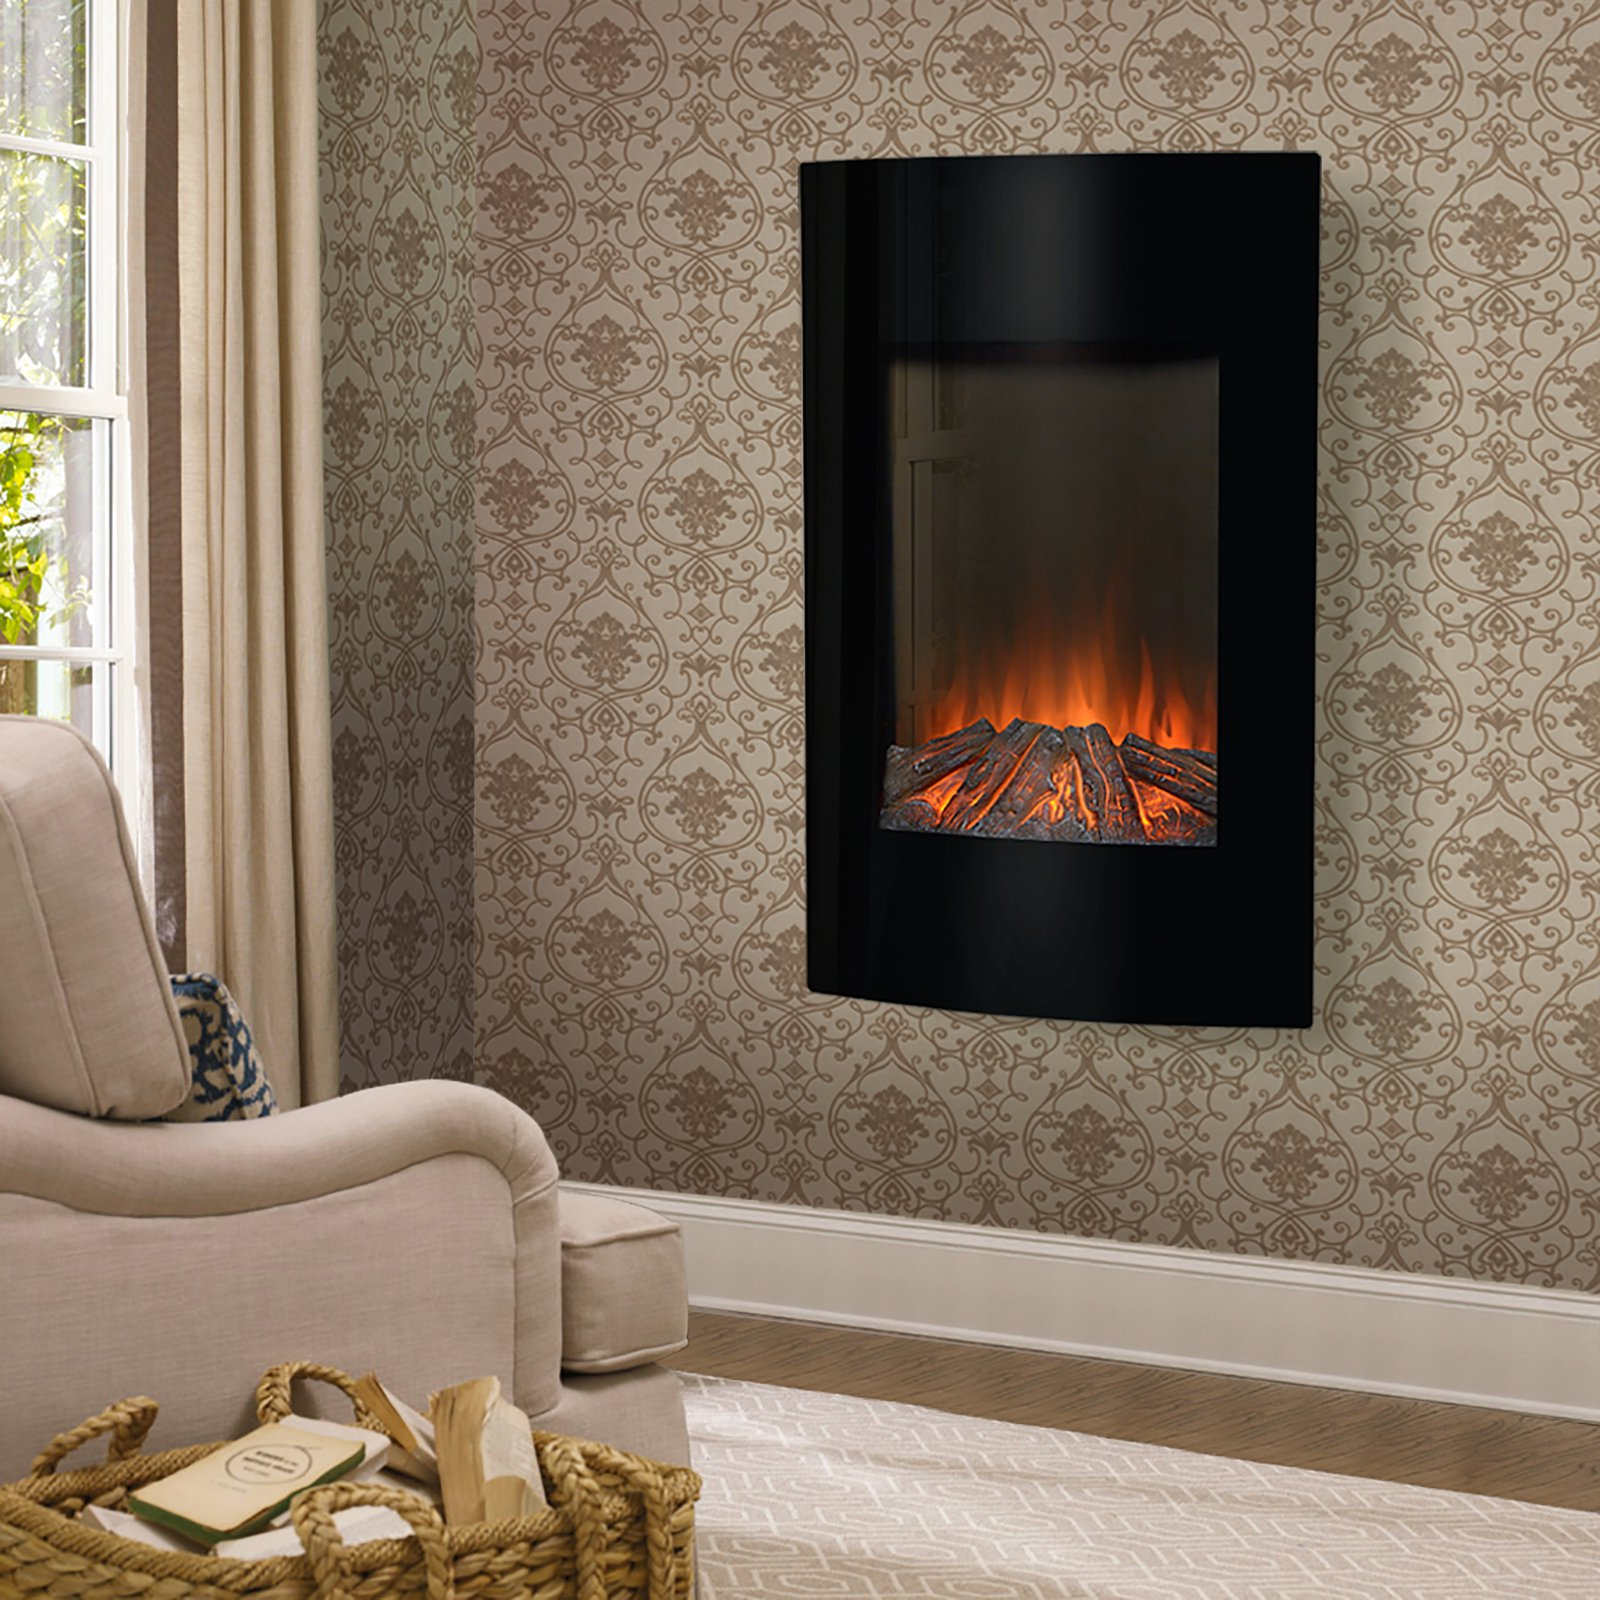 flamelux high wall mount electric fireplace black walmart com